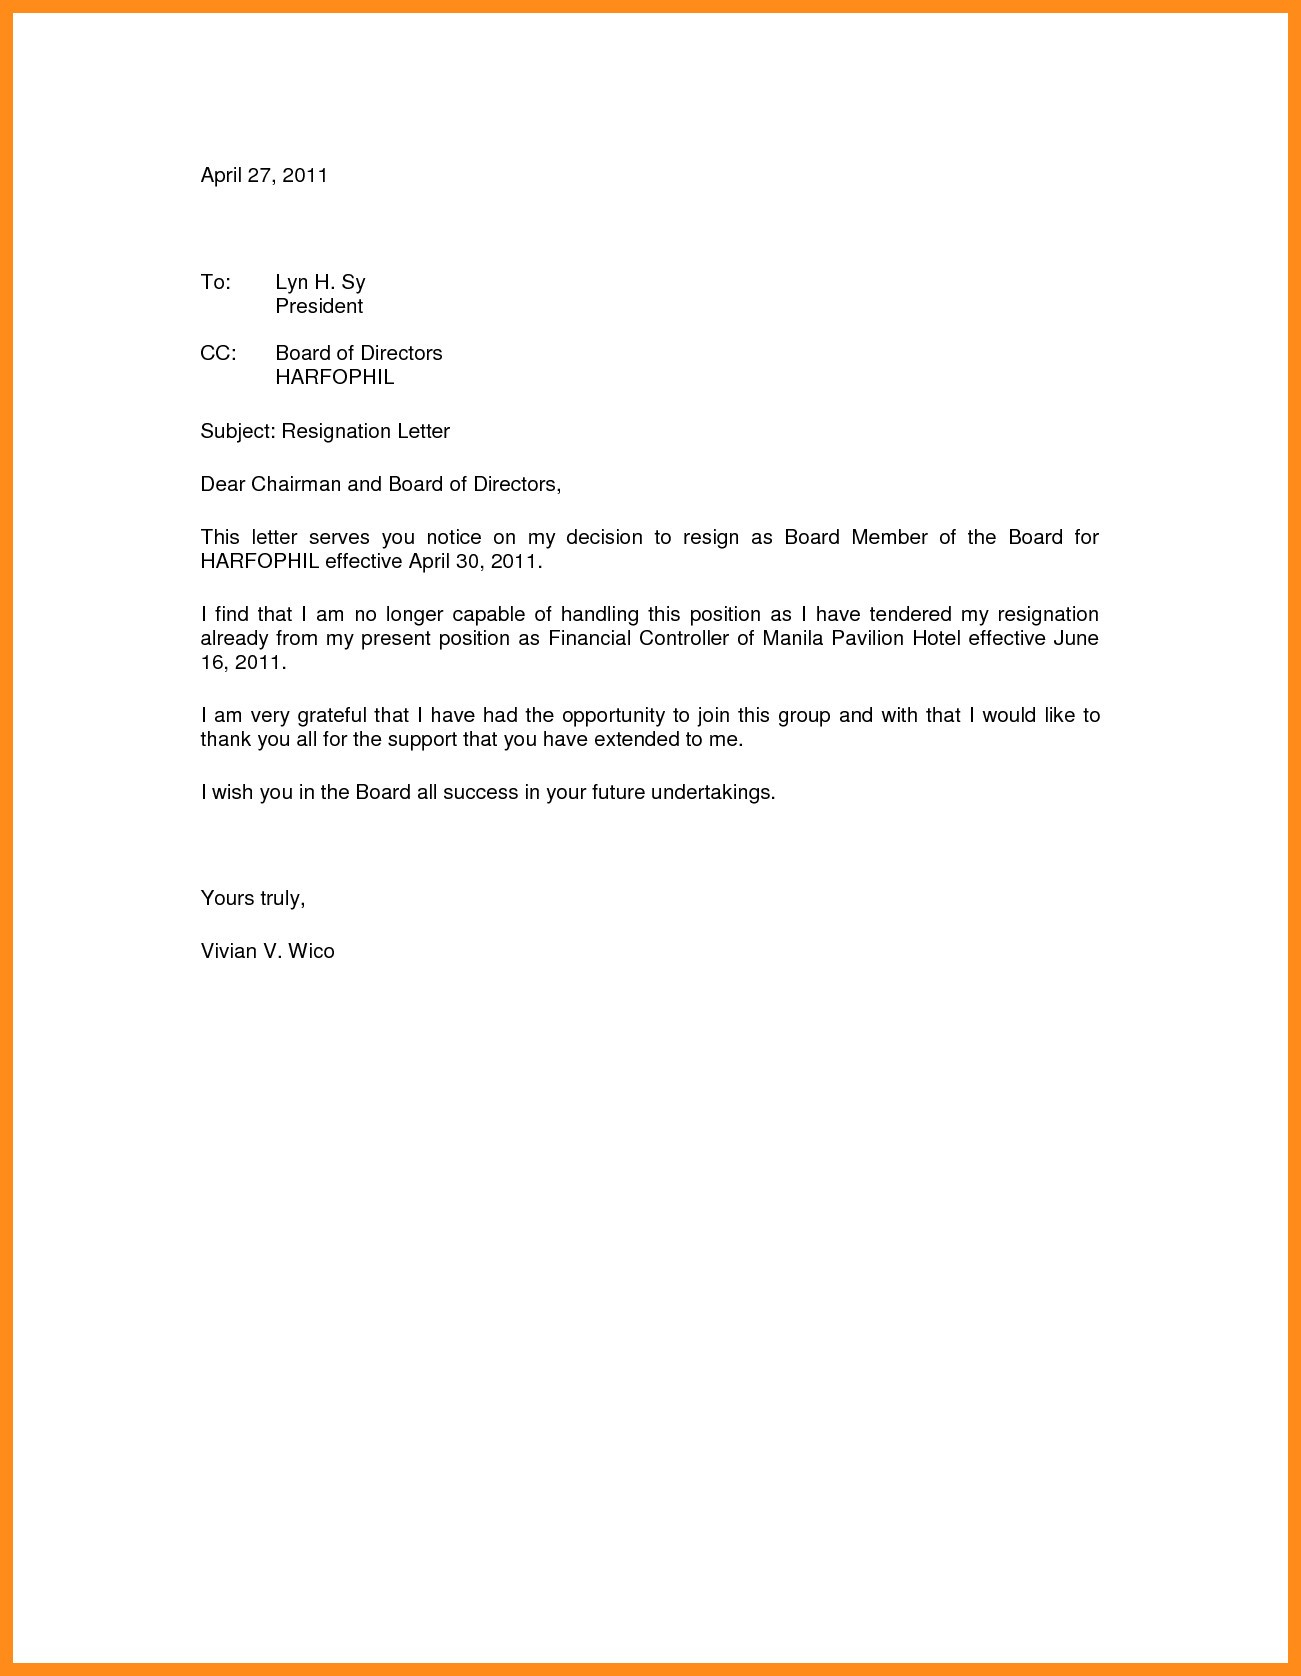 New Board Member orientation Welcome Letter Template - Resignation Letter From A Board Sarahepps